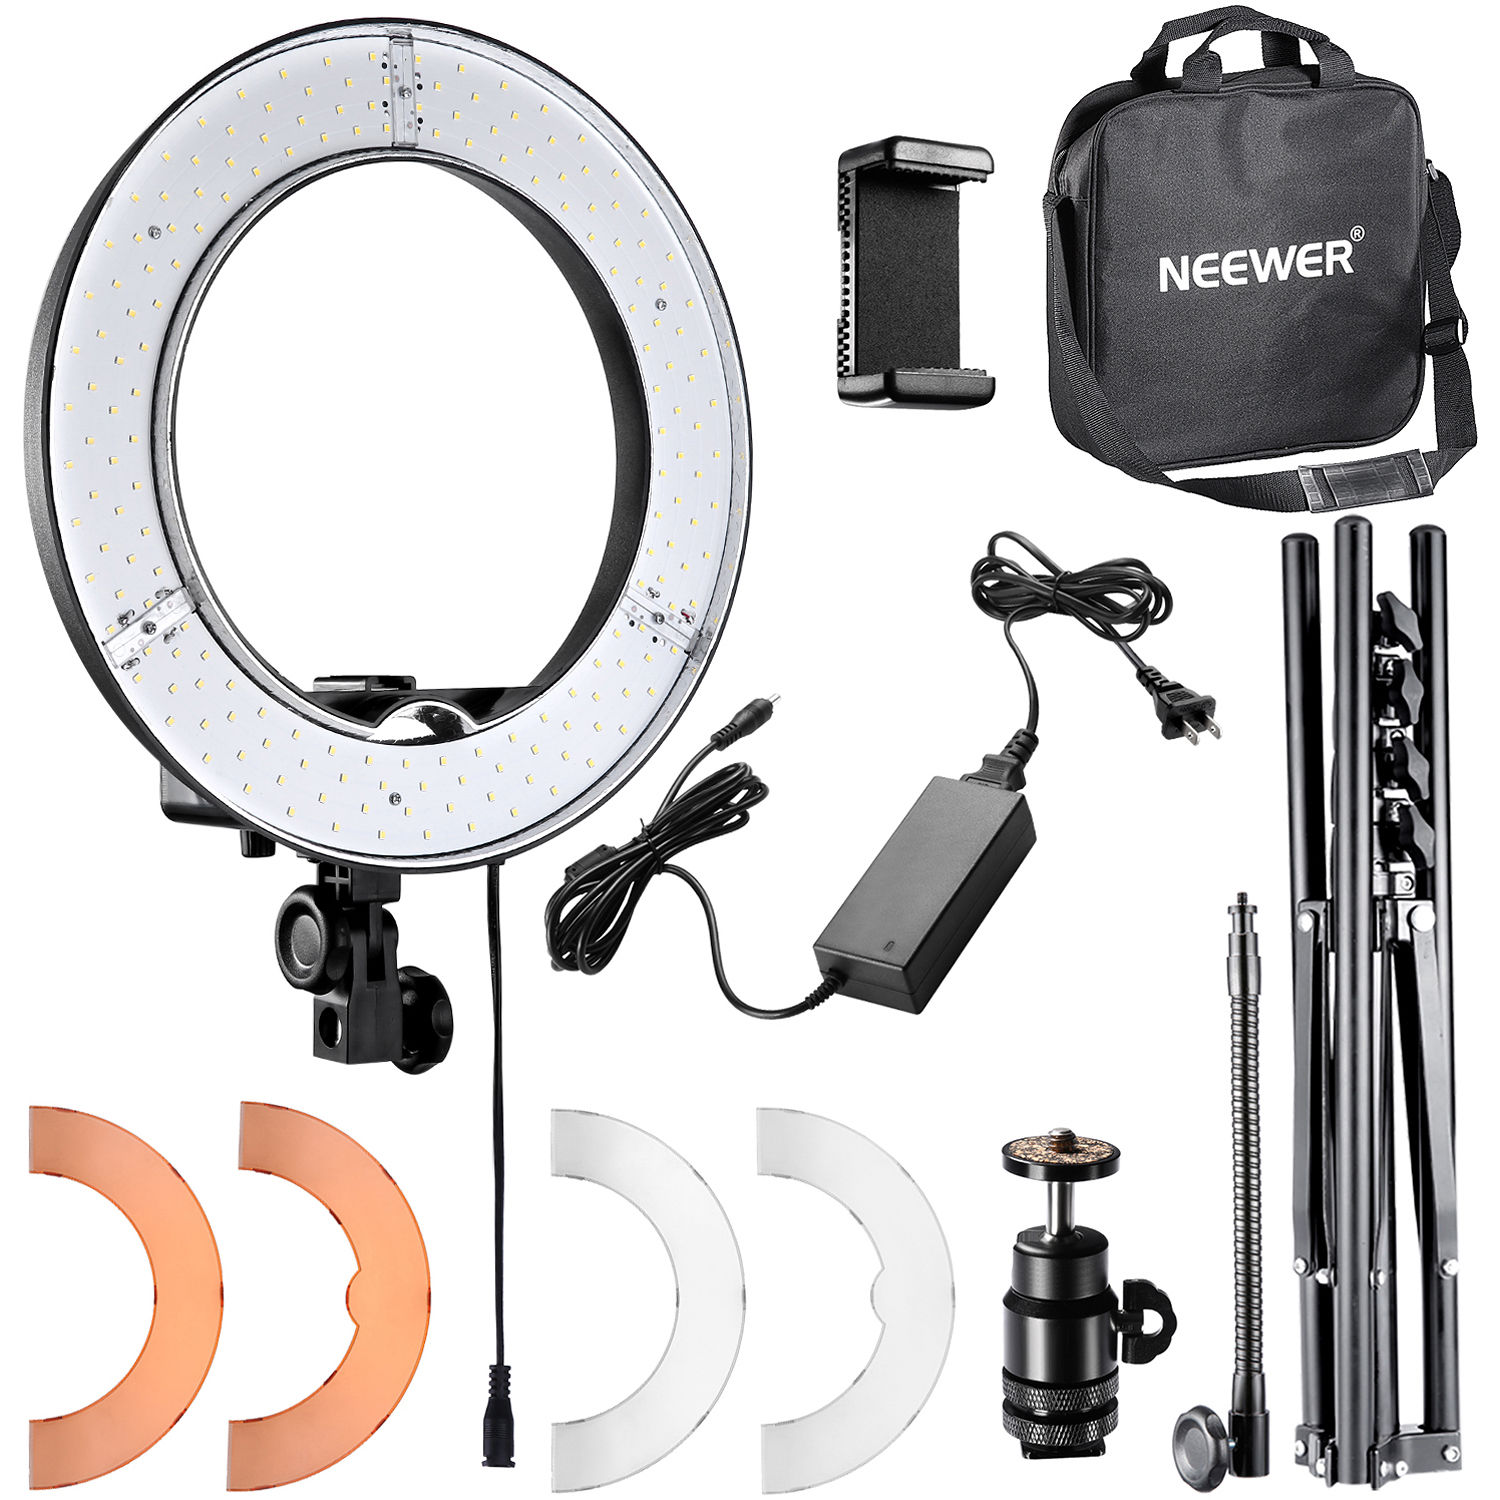 neewer led ring light with stand and accessories kit 10087109. Black Bedroom Furniture Sets. Home Design Ideas